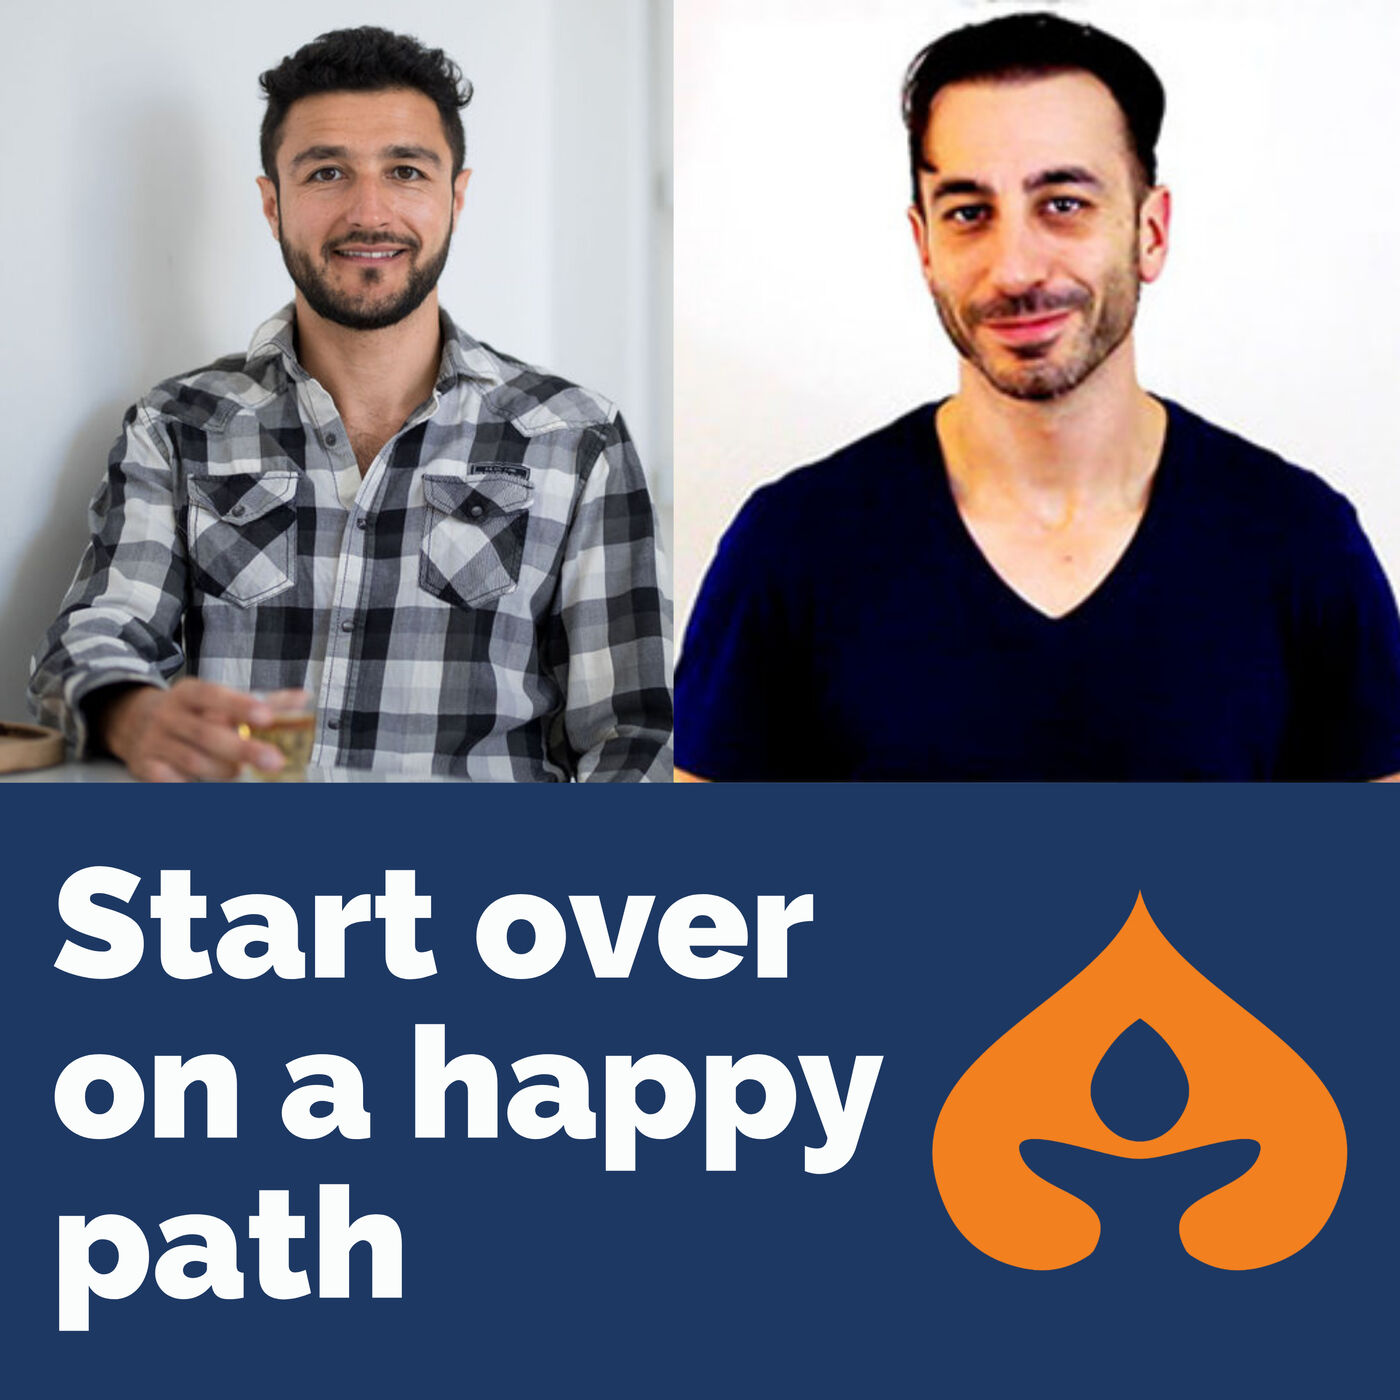 Shifting to a new career and life path by changing your self-concept - Damon Cart